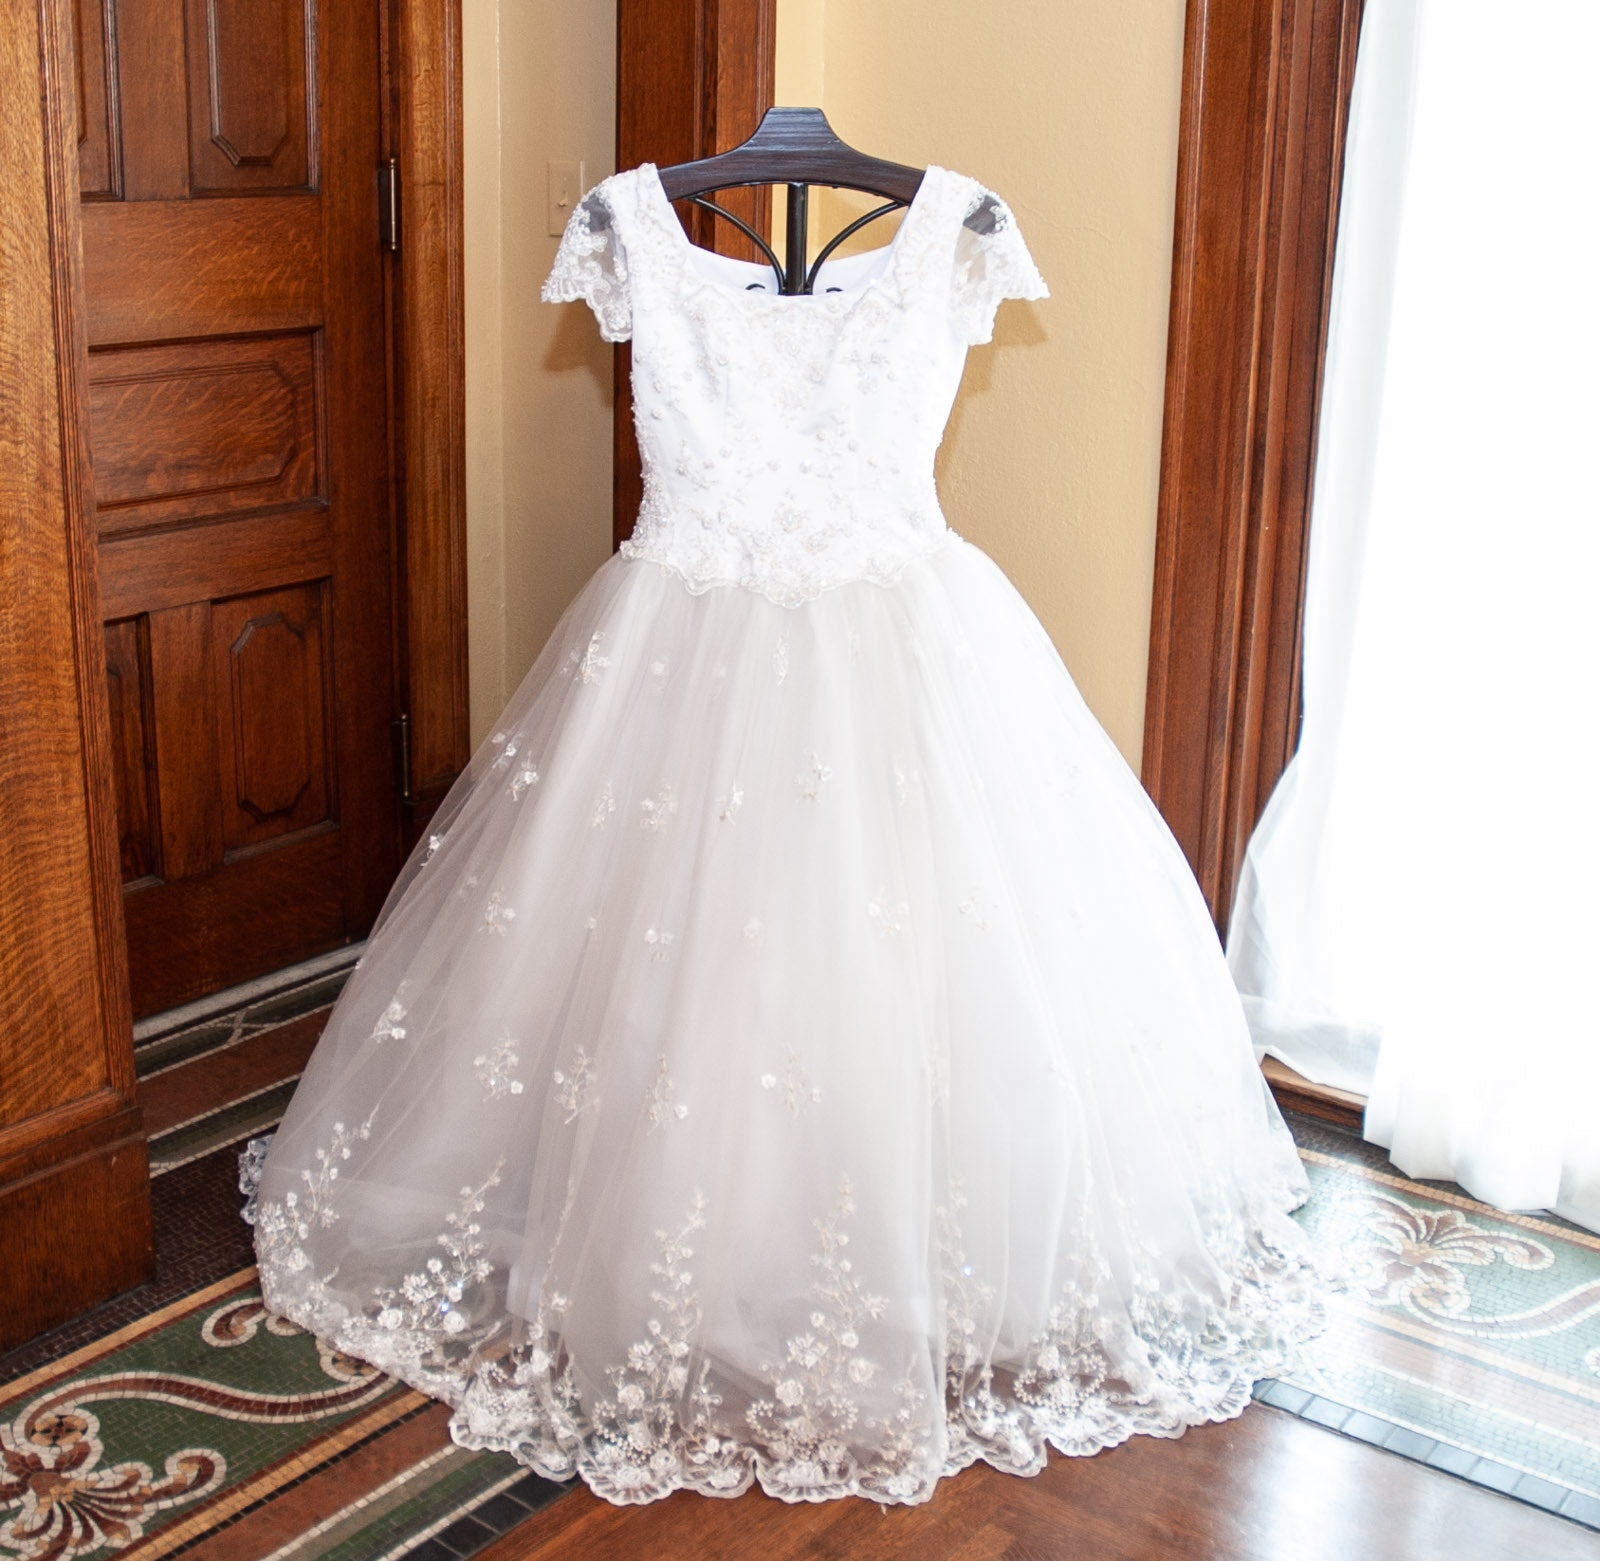 PC Mary's White Beaded Lace and Organza Wedding Gown